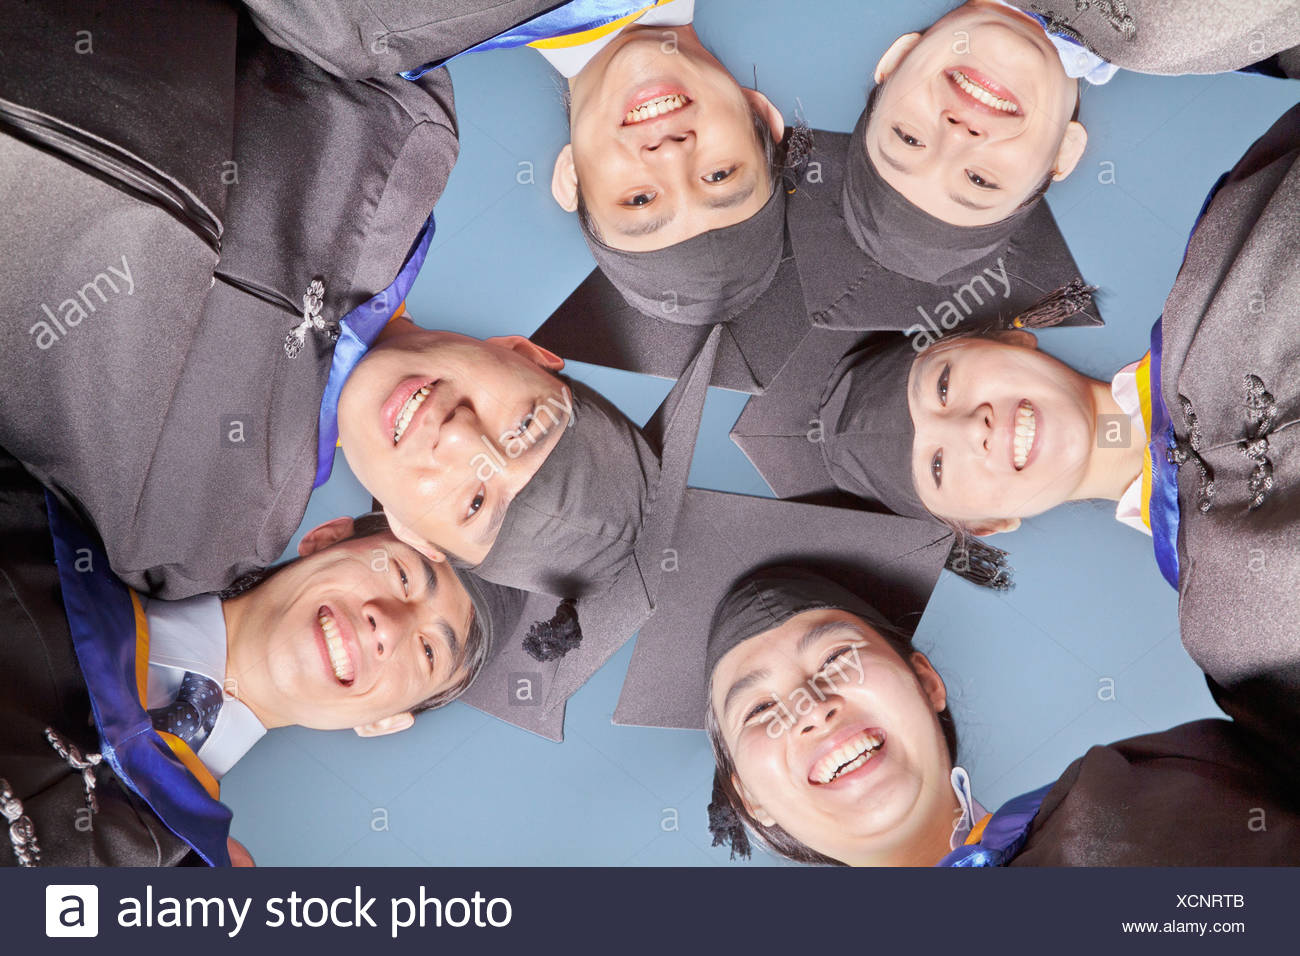 Circle of Graduate Students, View from Below - Stock Image